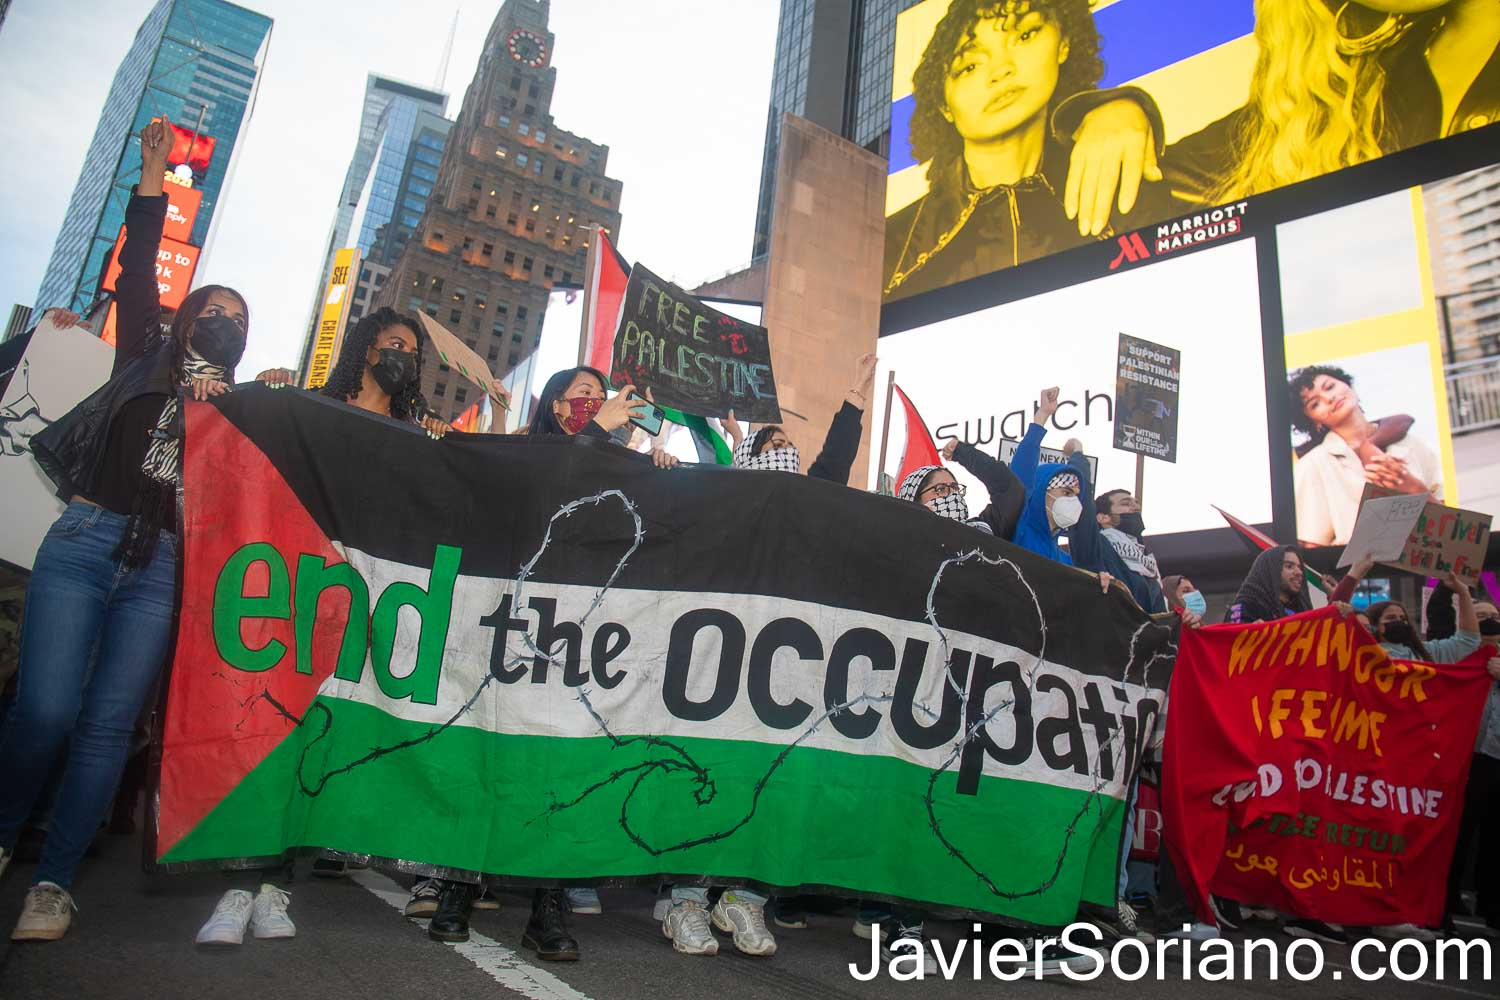 Tuesday, May 11, 2021. Manhattan, New York City – NY4Palestine, Palestinian Youth Movement (PYM), Al-Awda NY: The Palestine Right to Return Coalition, Samidoun Palestinian Prisoner Solidarity Network and Within our Lifetime • United for Palestine held a rally and march in solidarity with Palestine and its resistance. Thousands of Palestinians and their allies gathered outside the Zionist (Israeli) mission to the United Nations. After the rally, they marched to Times Square and then to Central Park/Columbus Circle in Manhattan, New York City. Photo by Javier Soriano/www.JavierSoriano.com